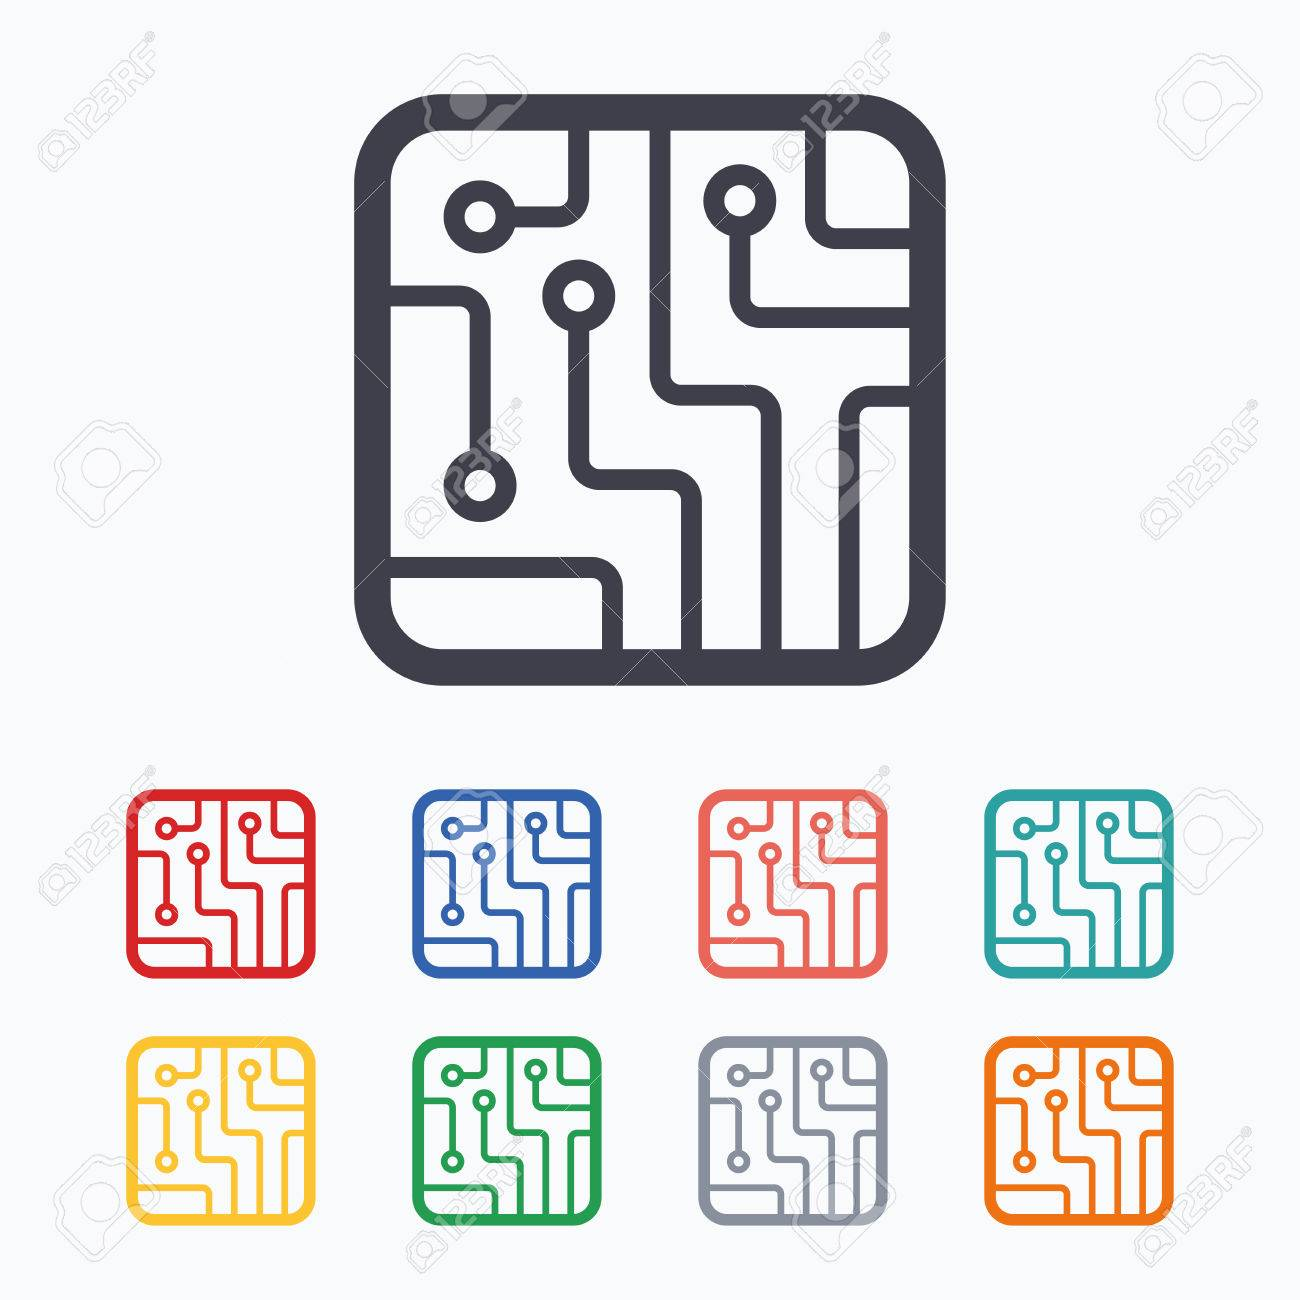 53029054 Circuit board sign icon Technology scheme square symbol Colored flat icons on white background Stock Vector cpu symbol wiring diagram ladder diagram symbols, pump diagram wiring symbols guide at mifinder.co